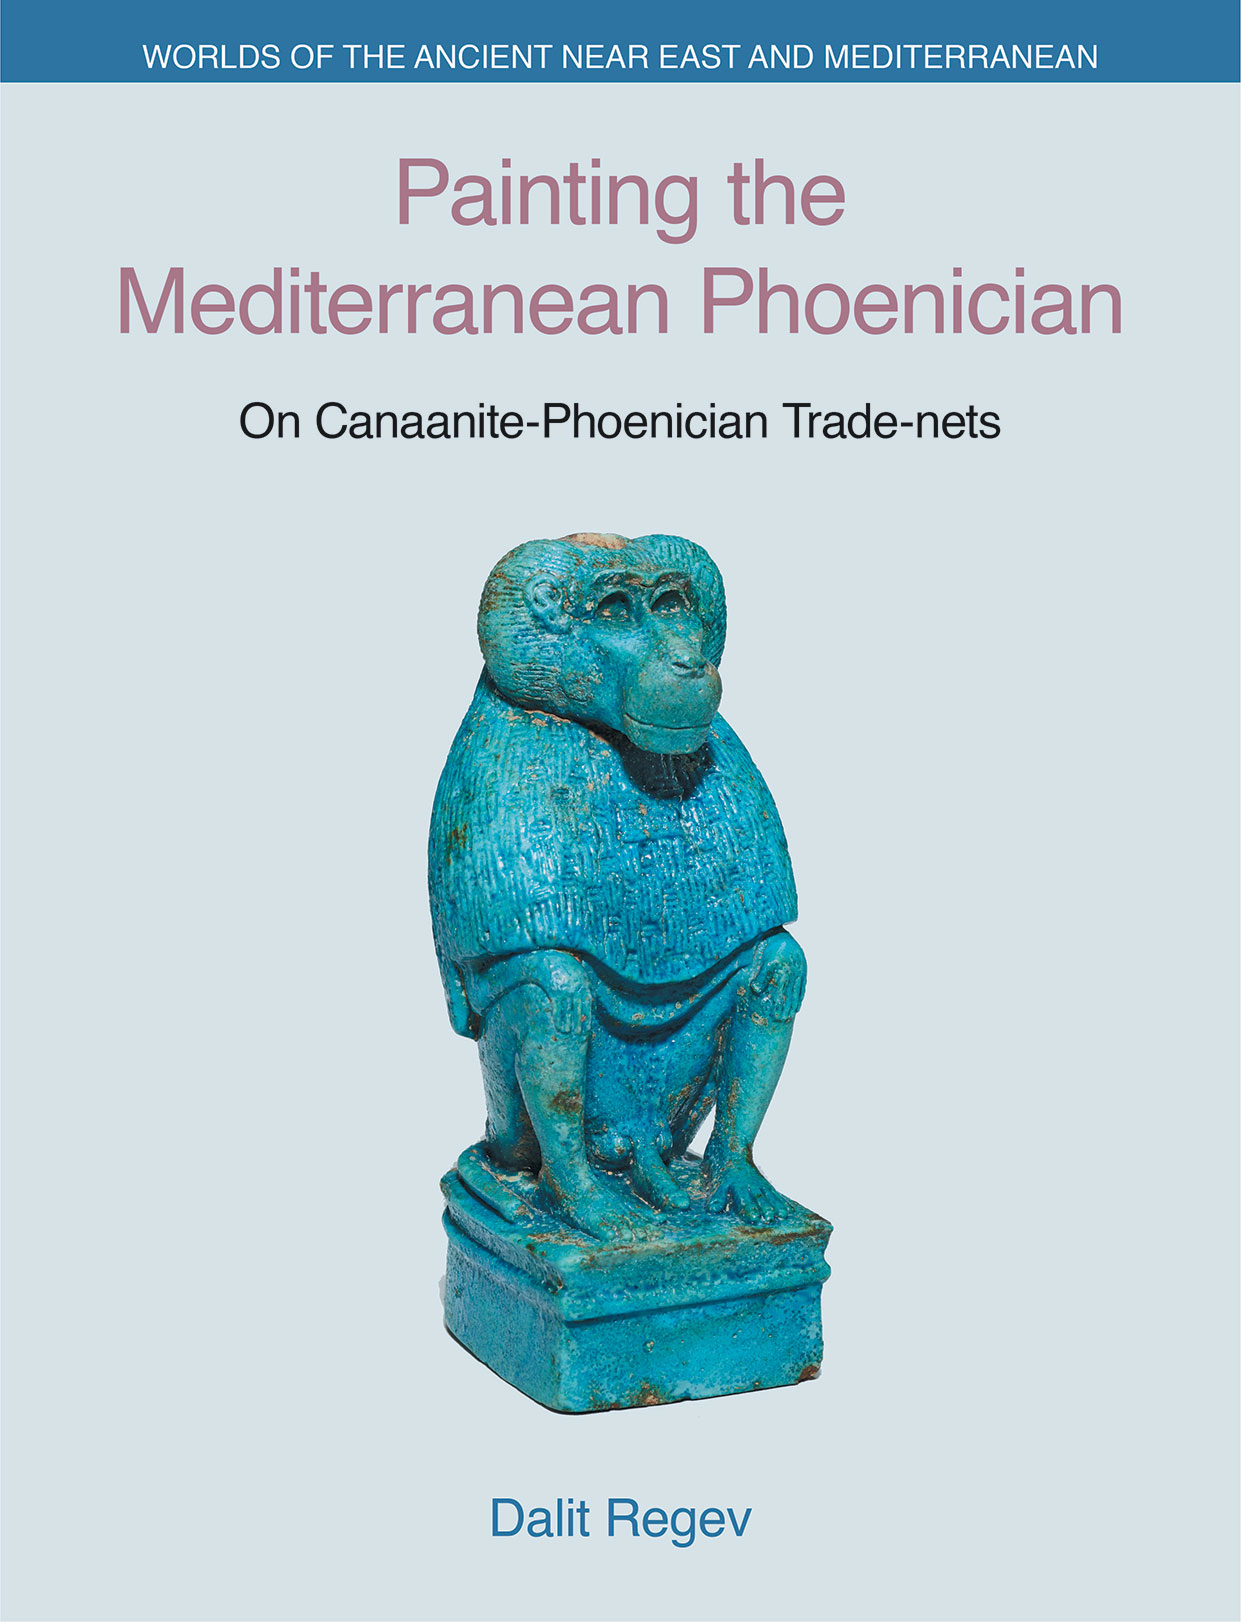 Painting the Mediterranean Phoenician